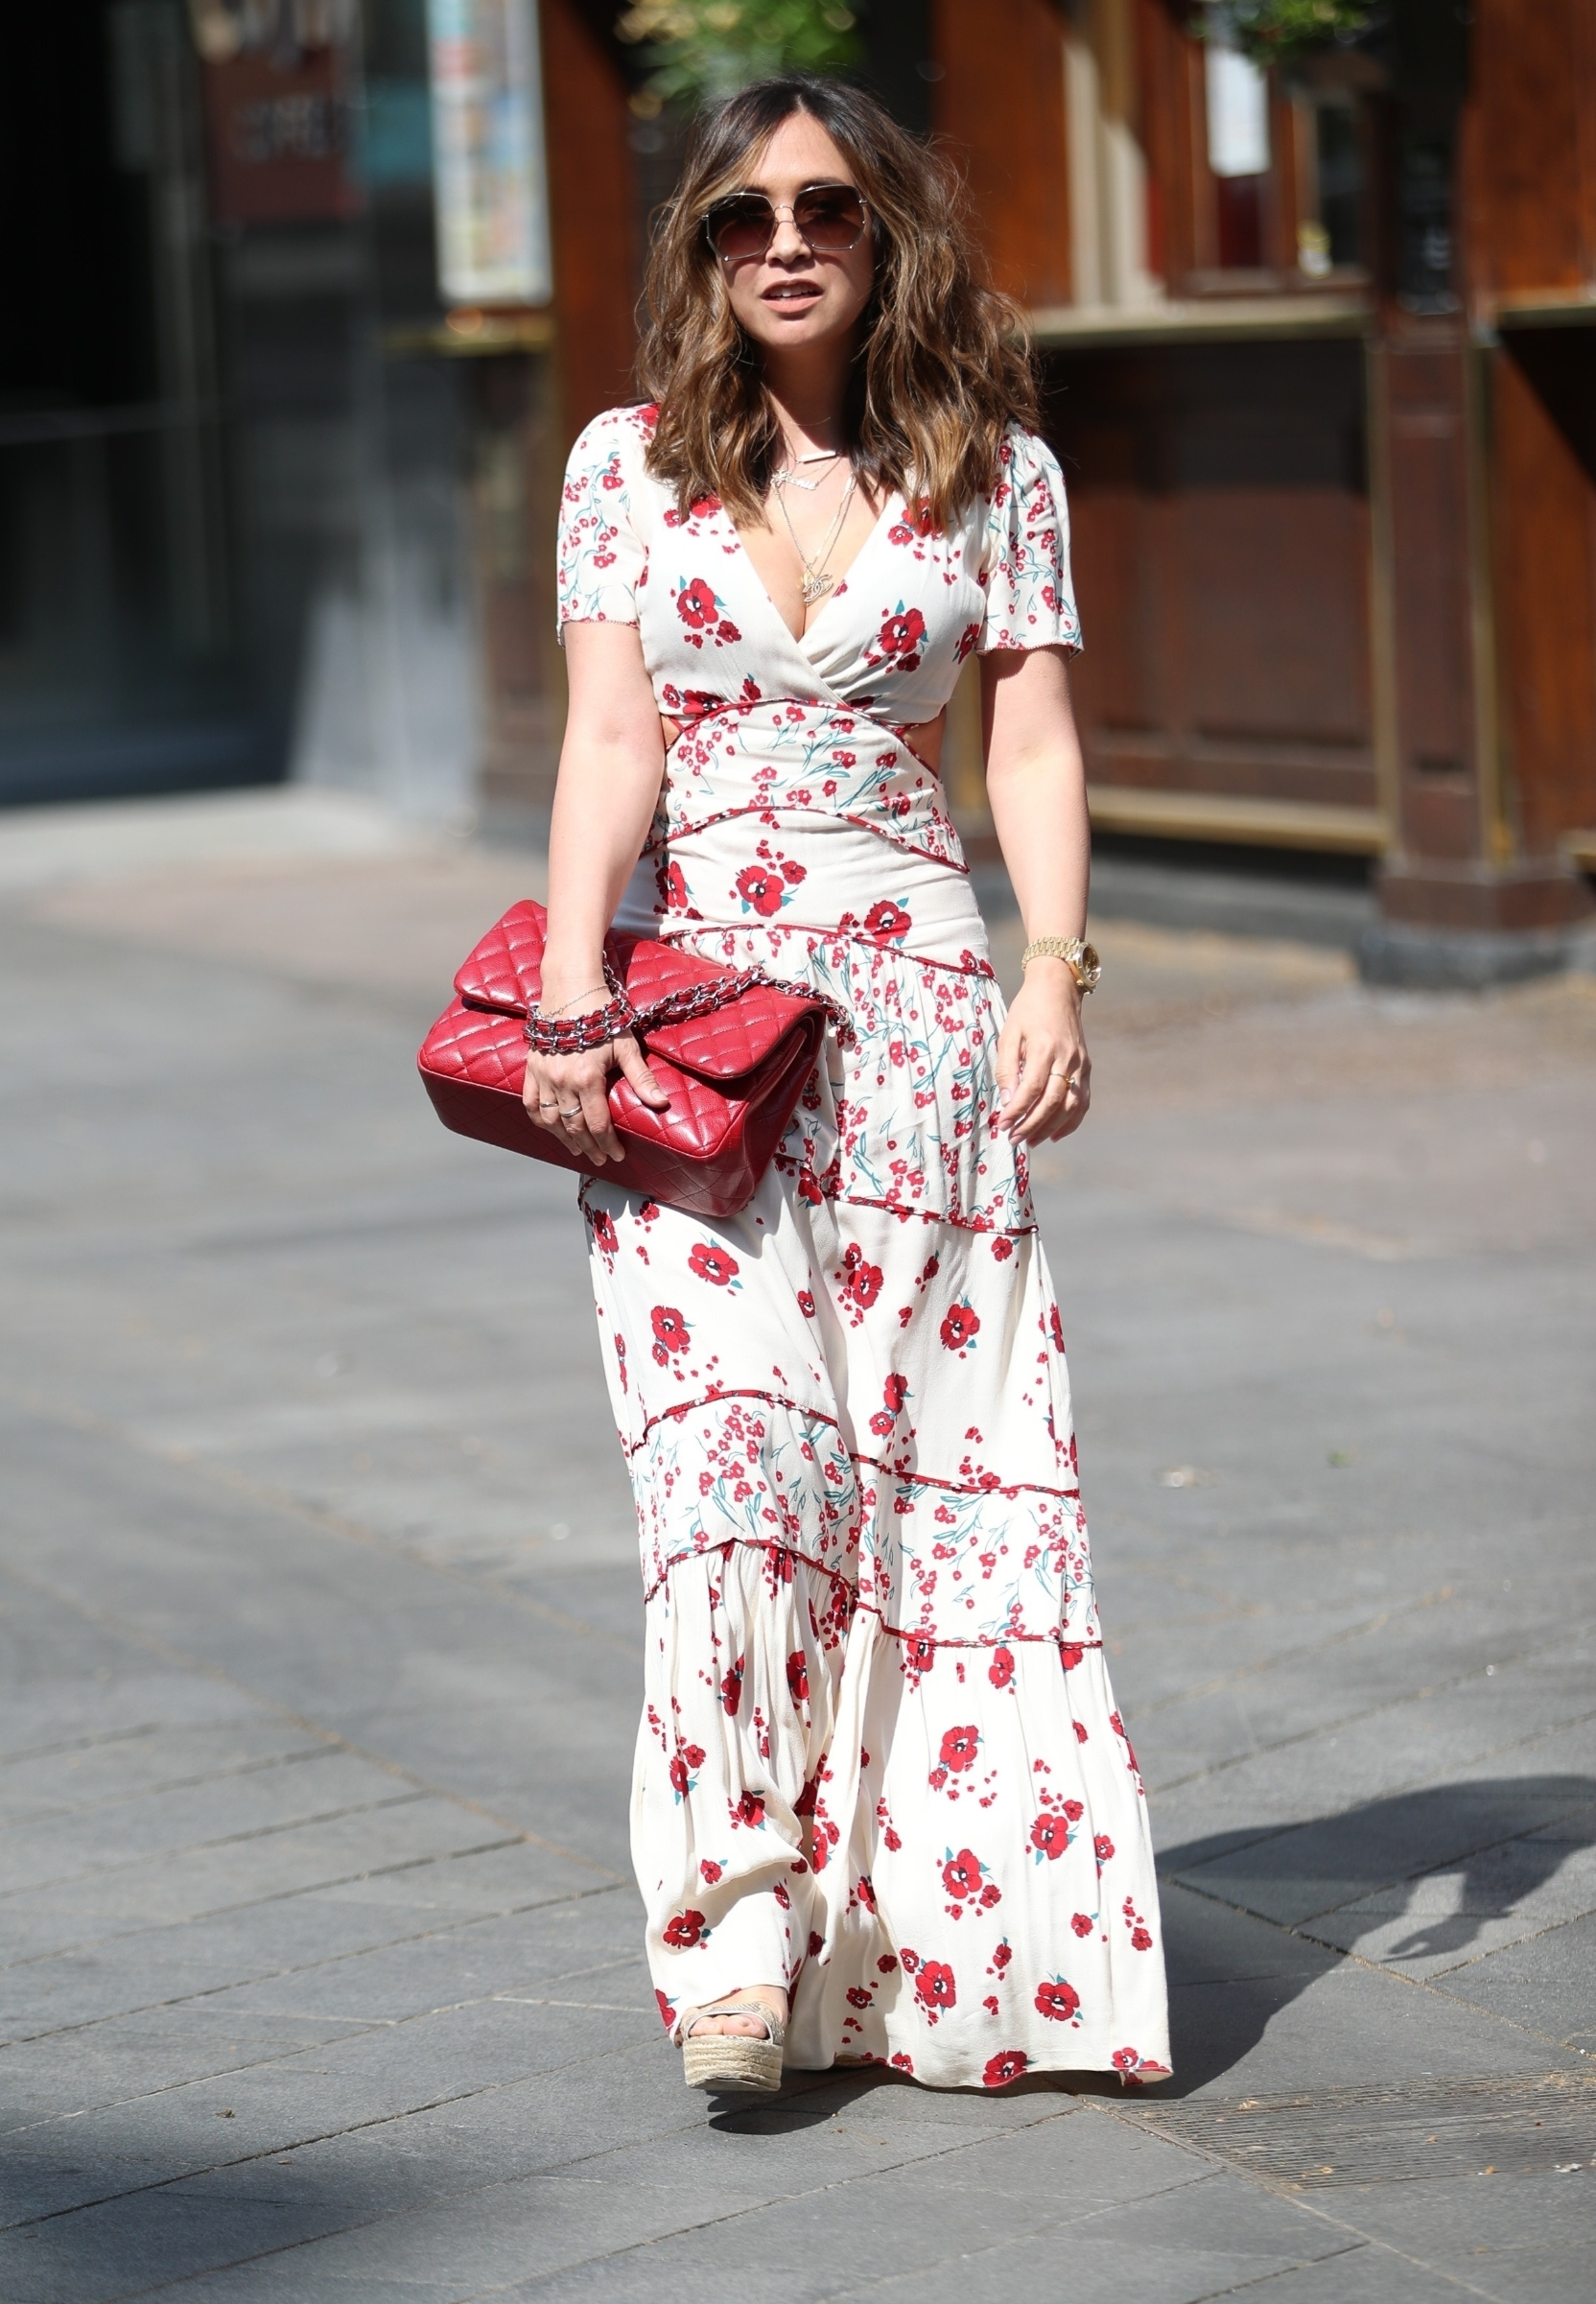 London, UNITED KINGDOM  - Singer Myleene Klass looks super chic while leaving the Smooth Radio Studios in London wearing a busty floral dress.  *UK Clients - Pictures Containing Children Please Pixelate Face Prior To Publication*, Image: 514981975, License: Rights-managed, Restrictions: , Model Release: no, Credit line: BACKGRID / Backgrid UK / Profimedia